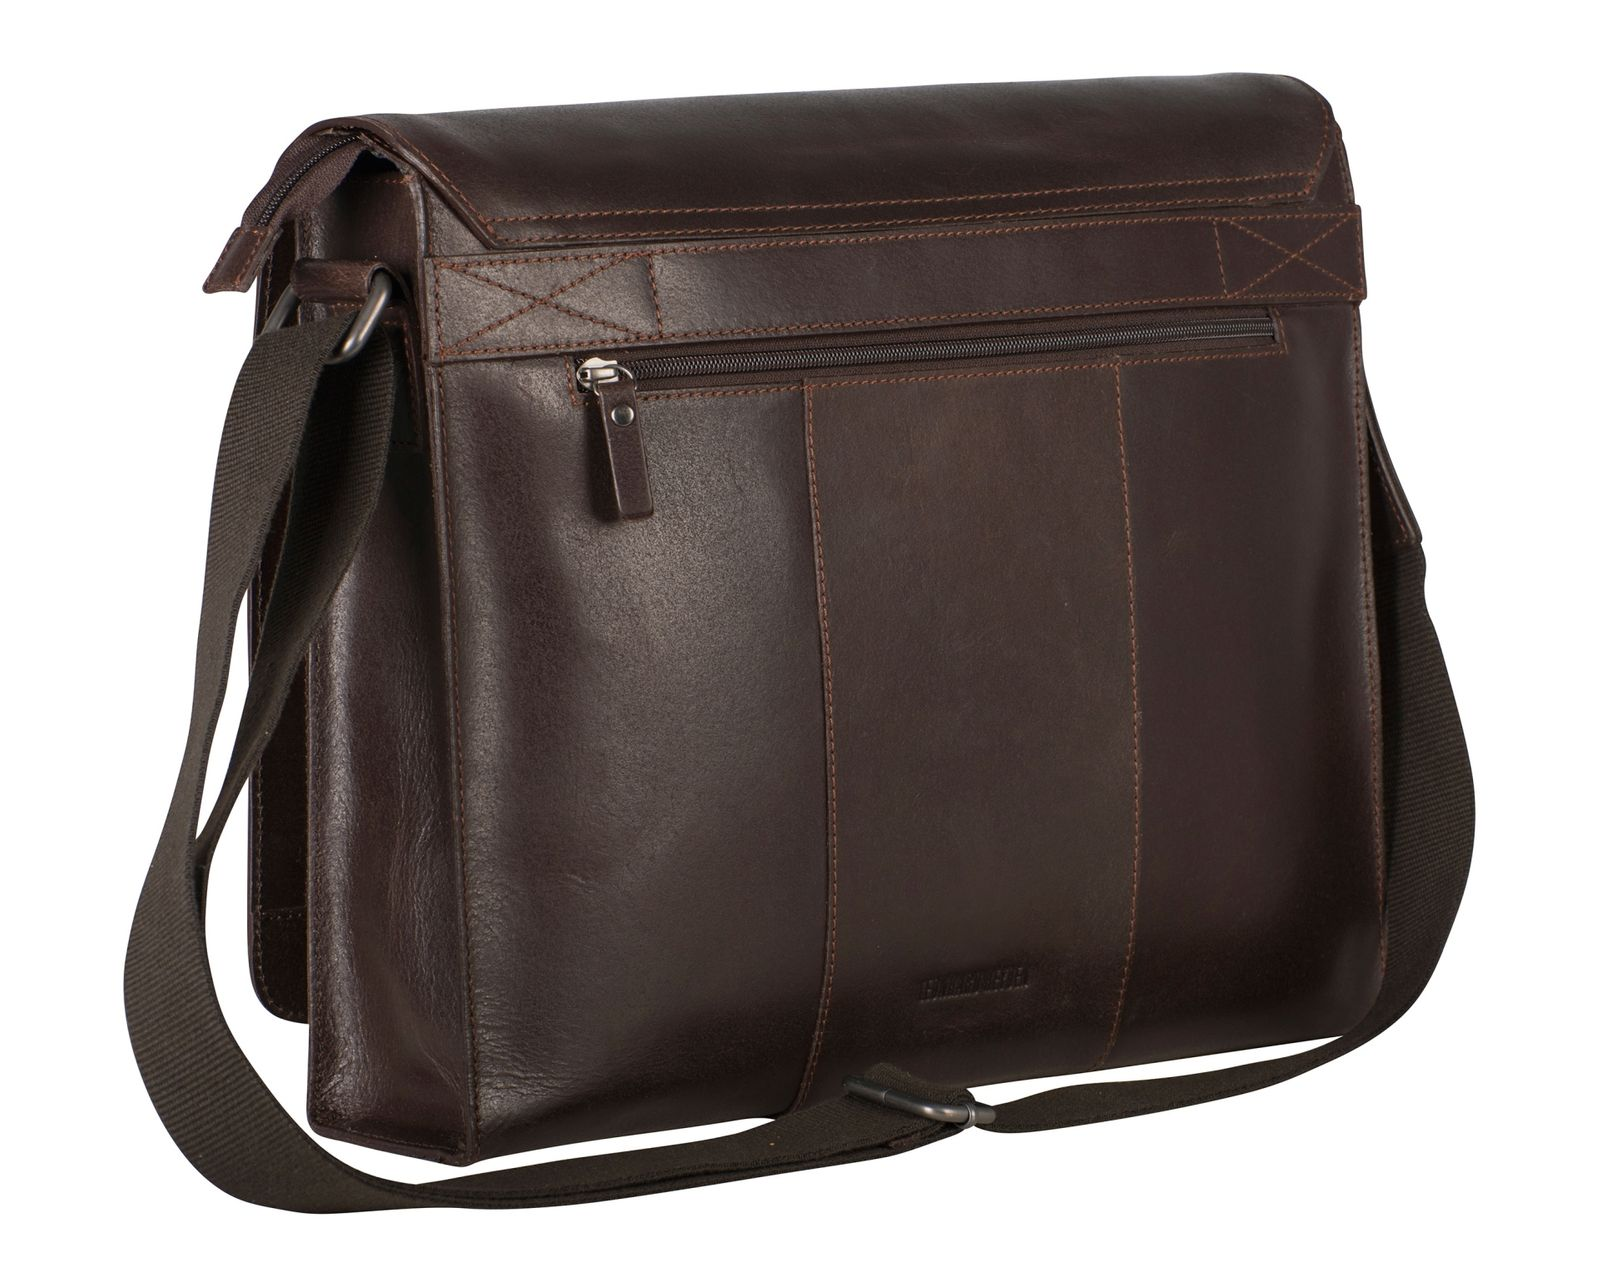 Leonhard Heyden Dakota Messenger Bag L Brown Homyped Heidi B 23 Lbrown More